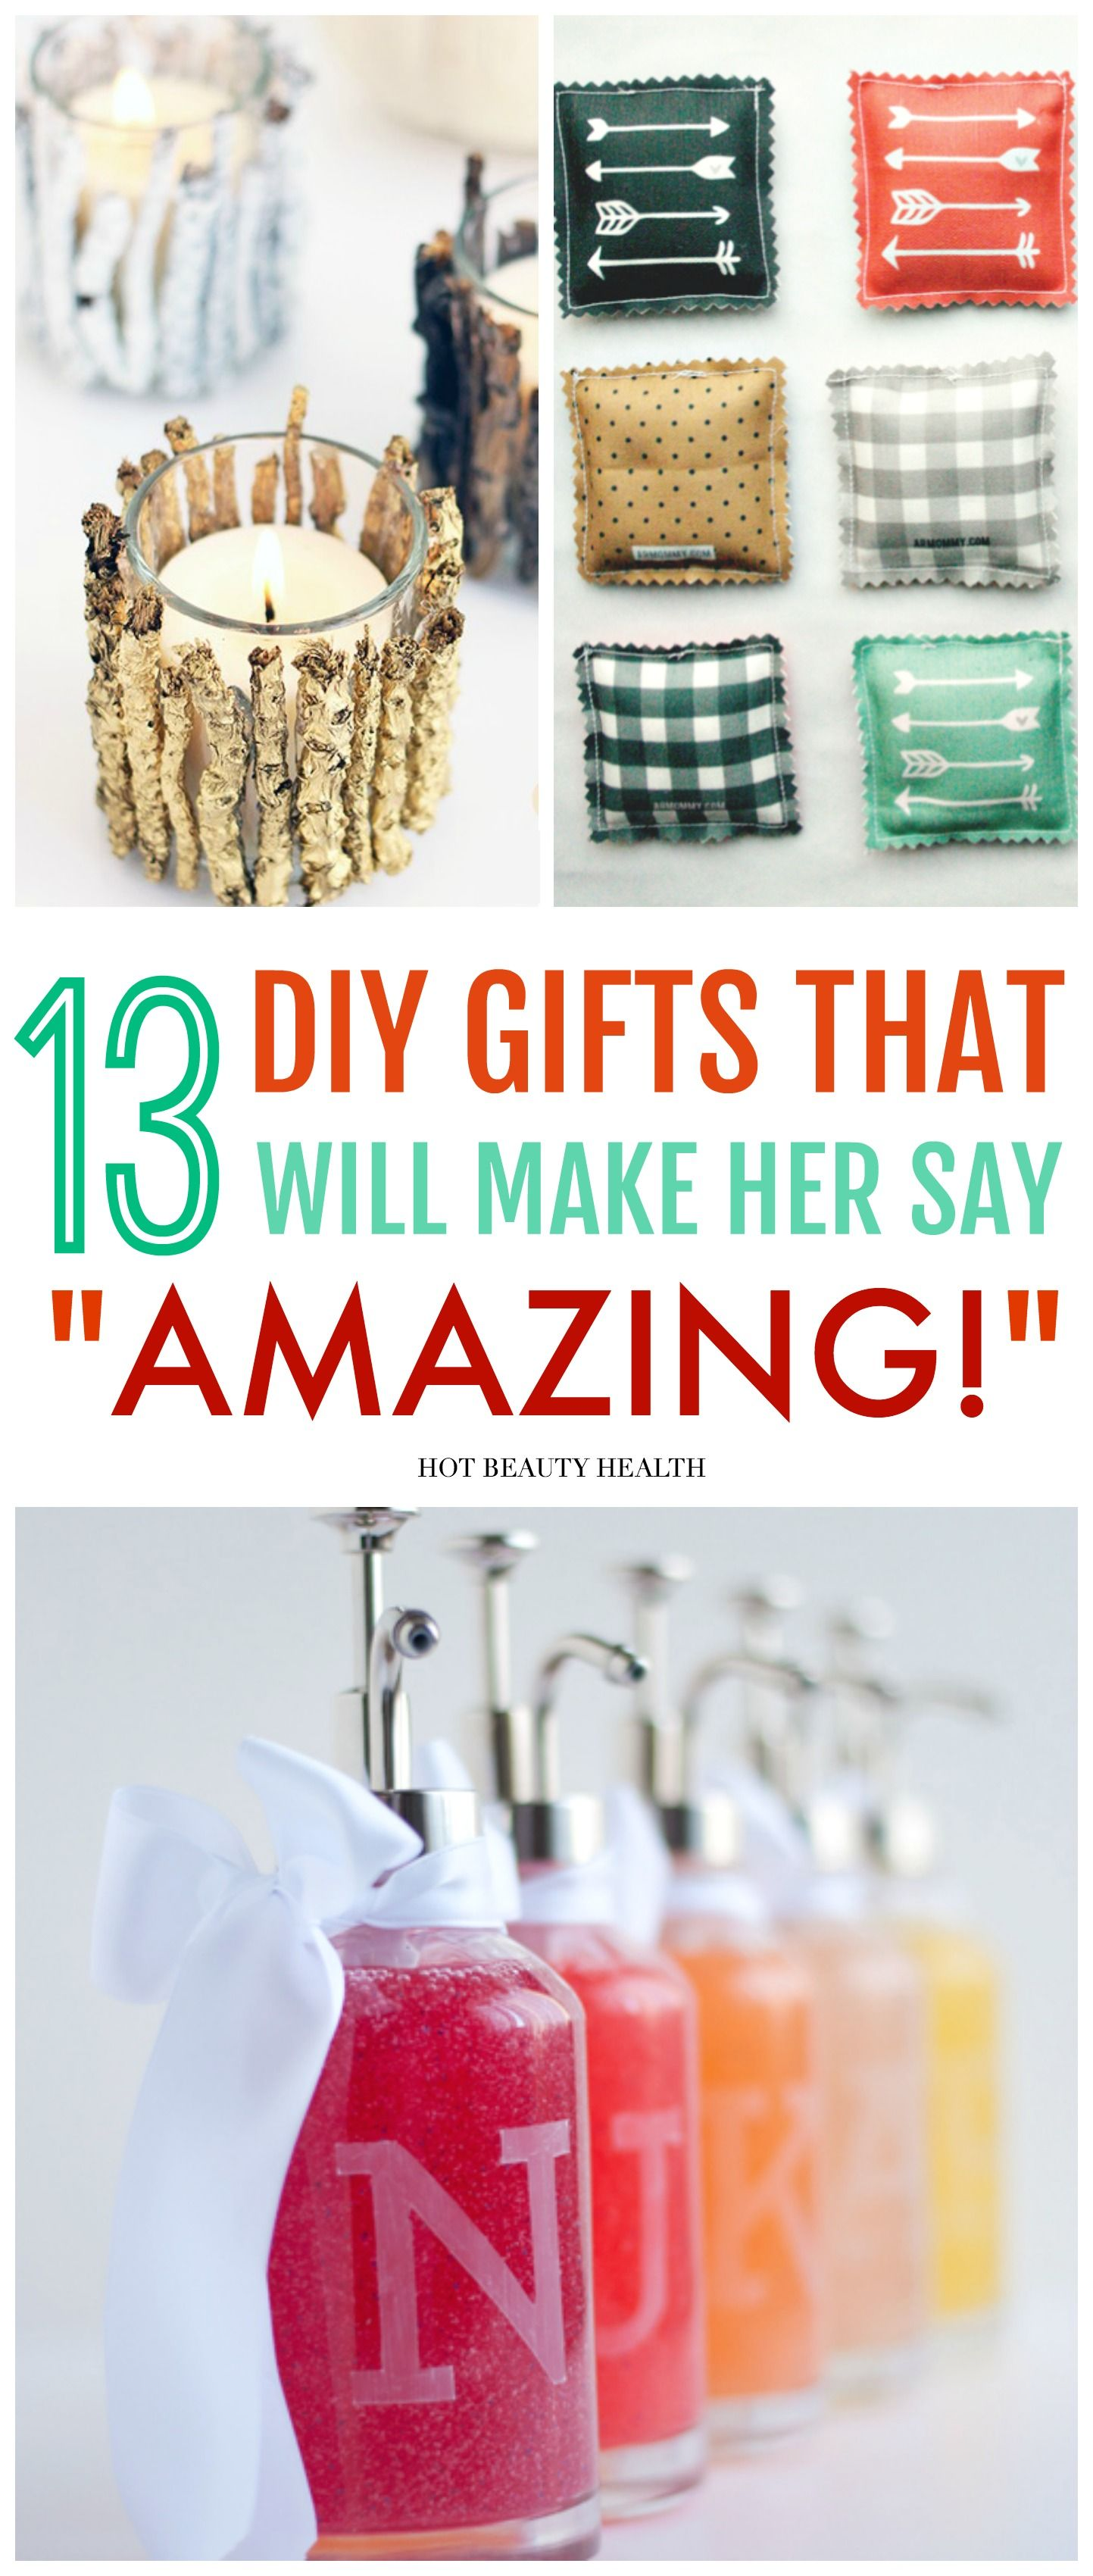 13 Amazing Diy Christmas Gift Ideas People Actually Want Diy Holiday Gifts Diy Xmas Gifts Diy Christmas Gifts